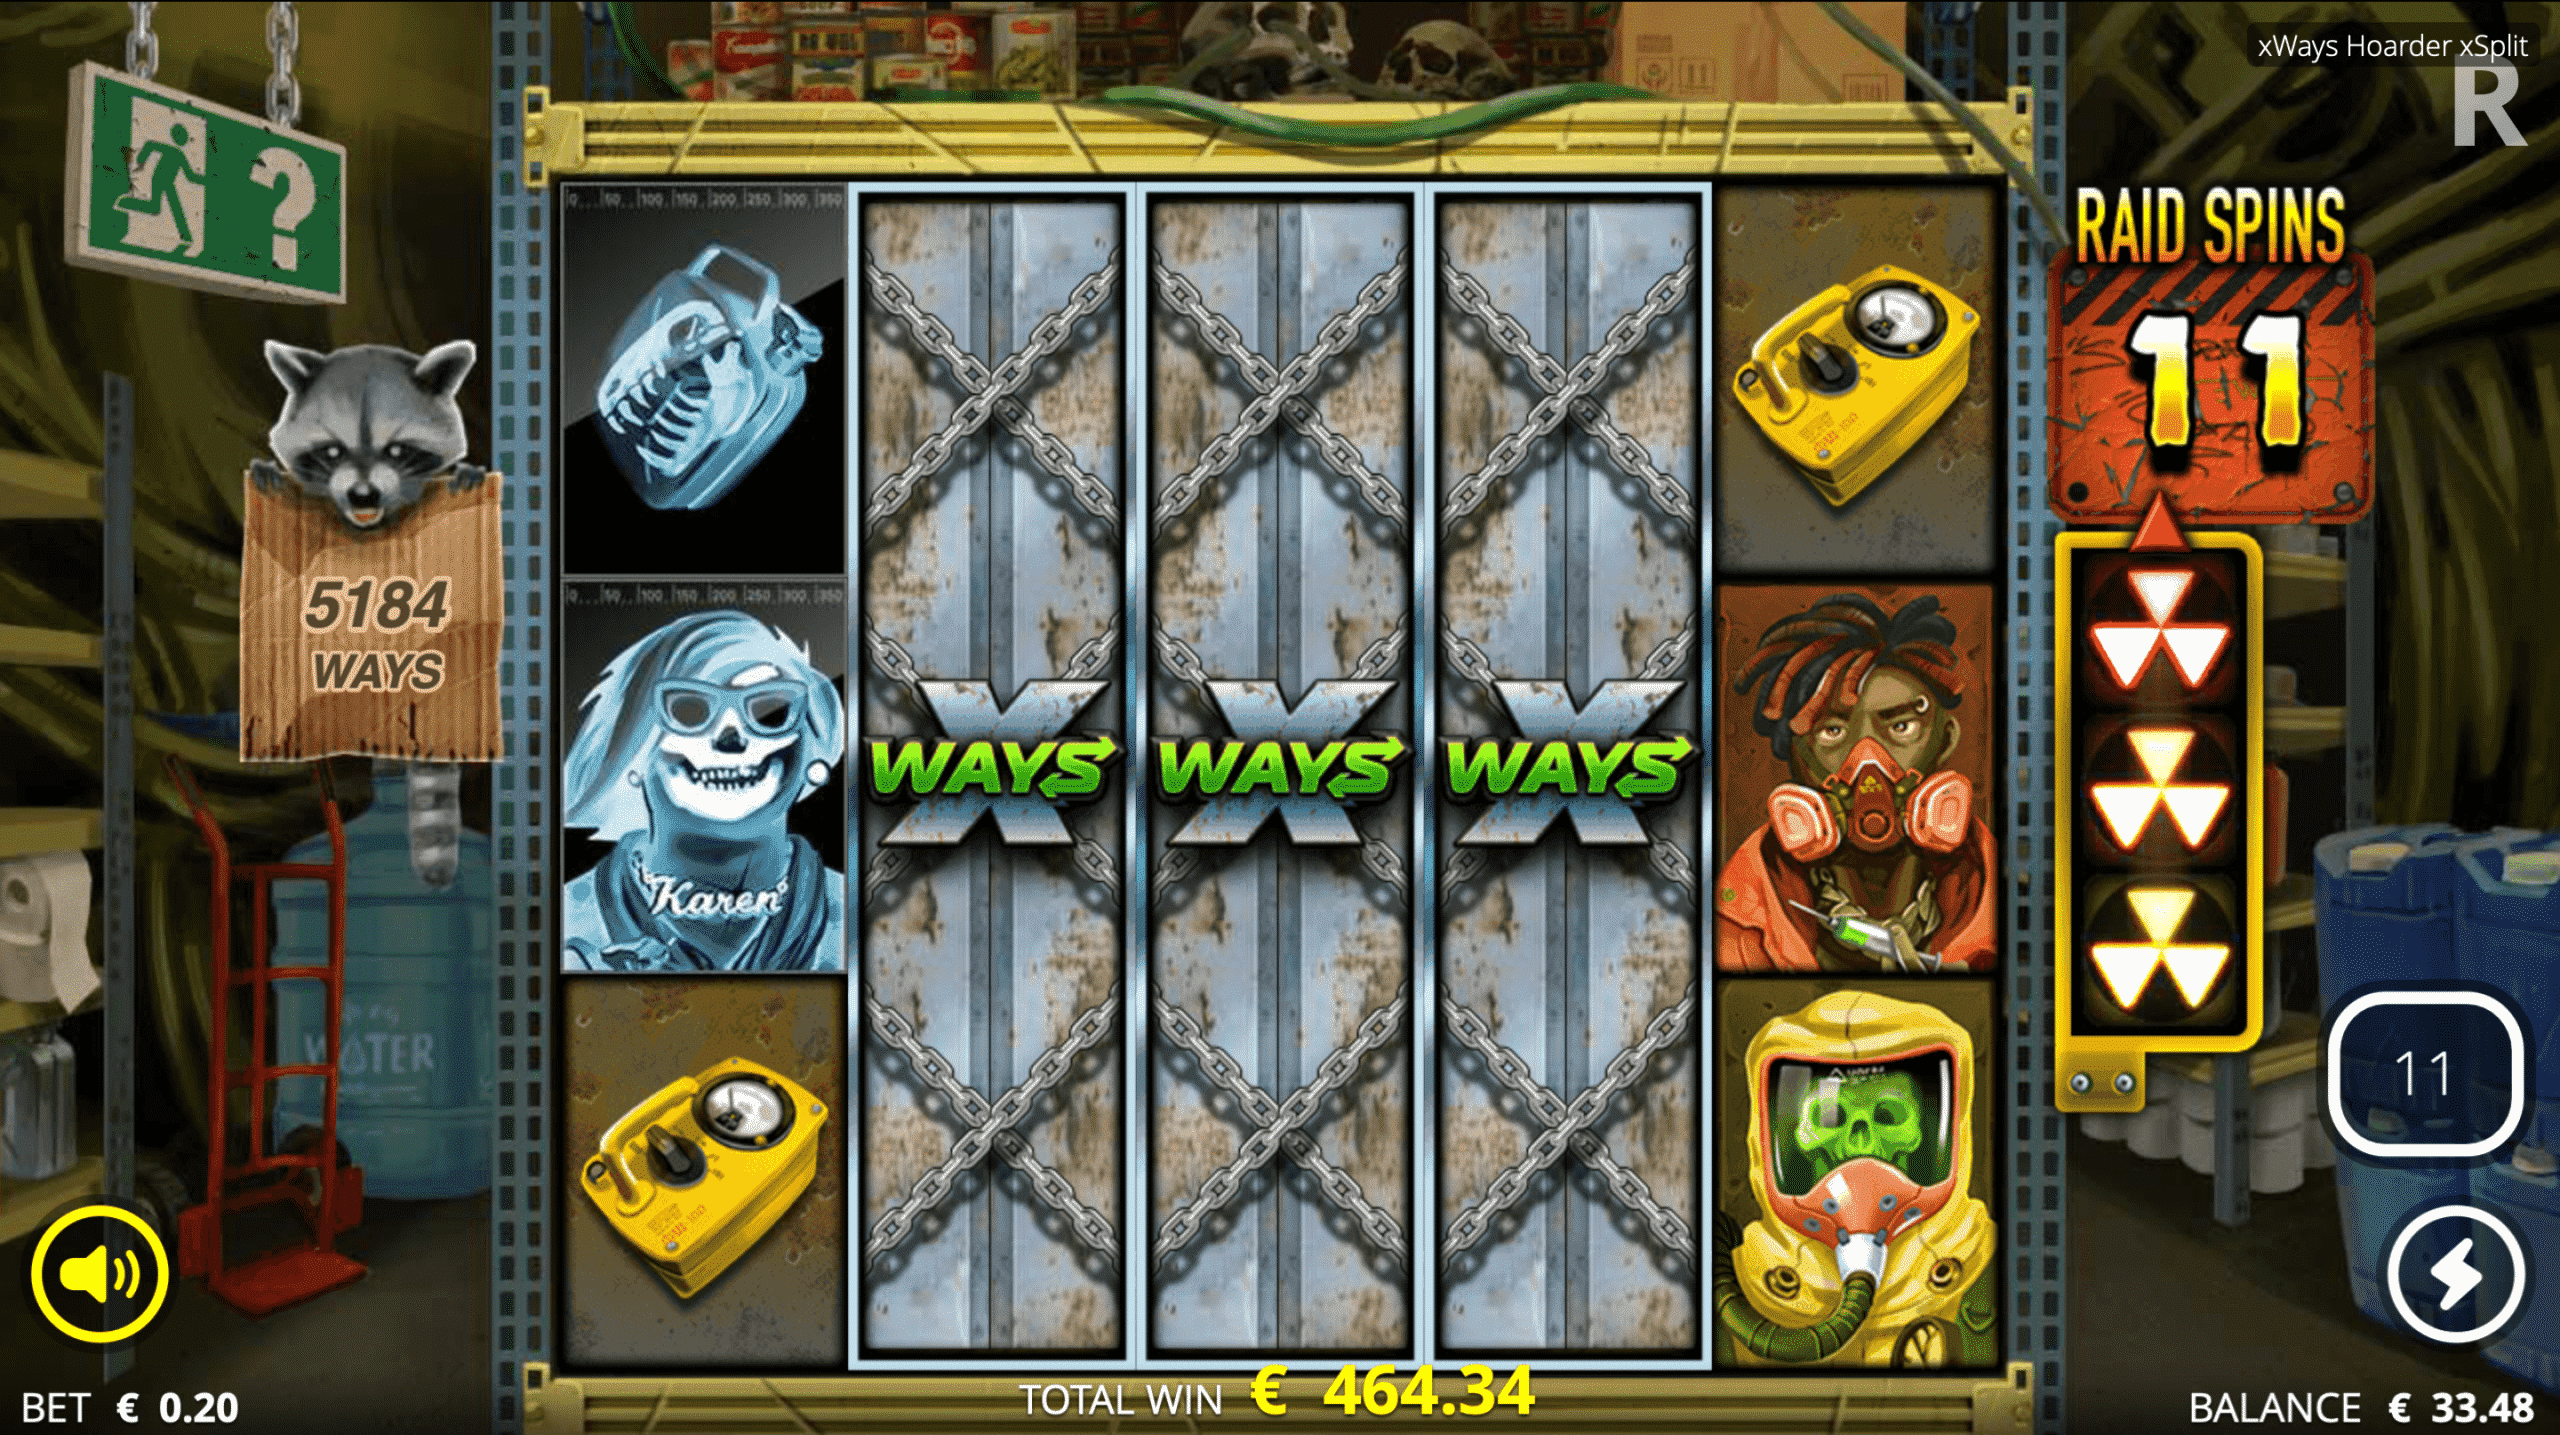 The Player In Question Progresses To Wasteland Spins with 10 Spins Remaining